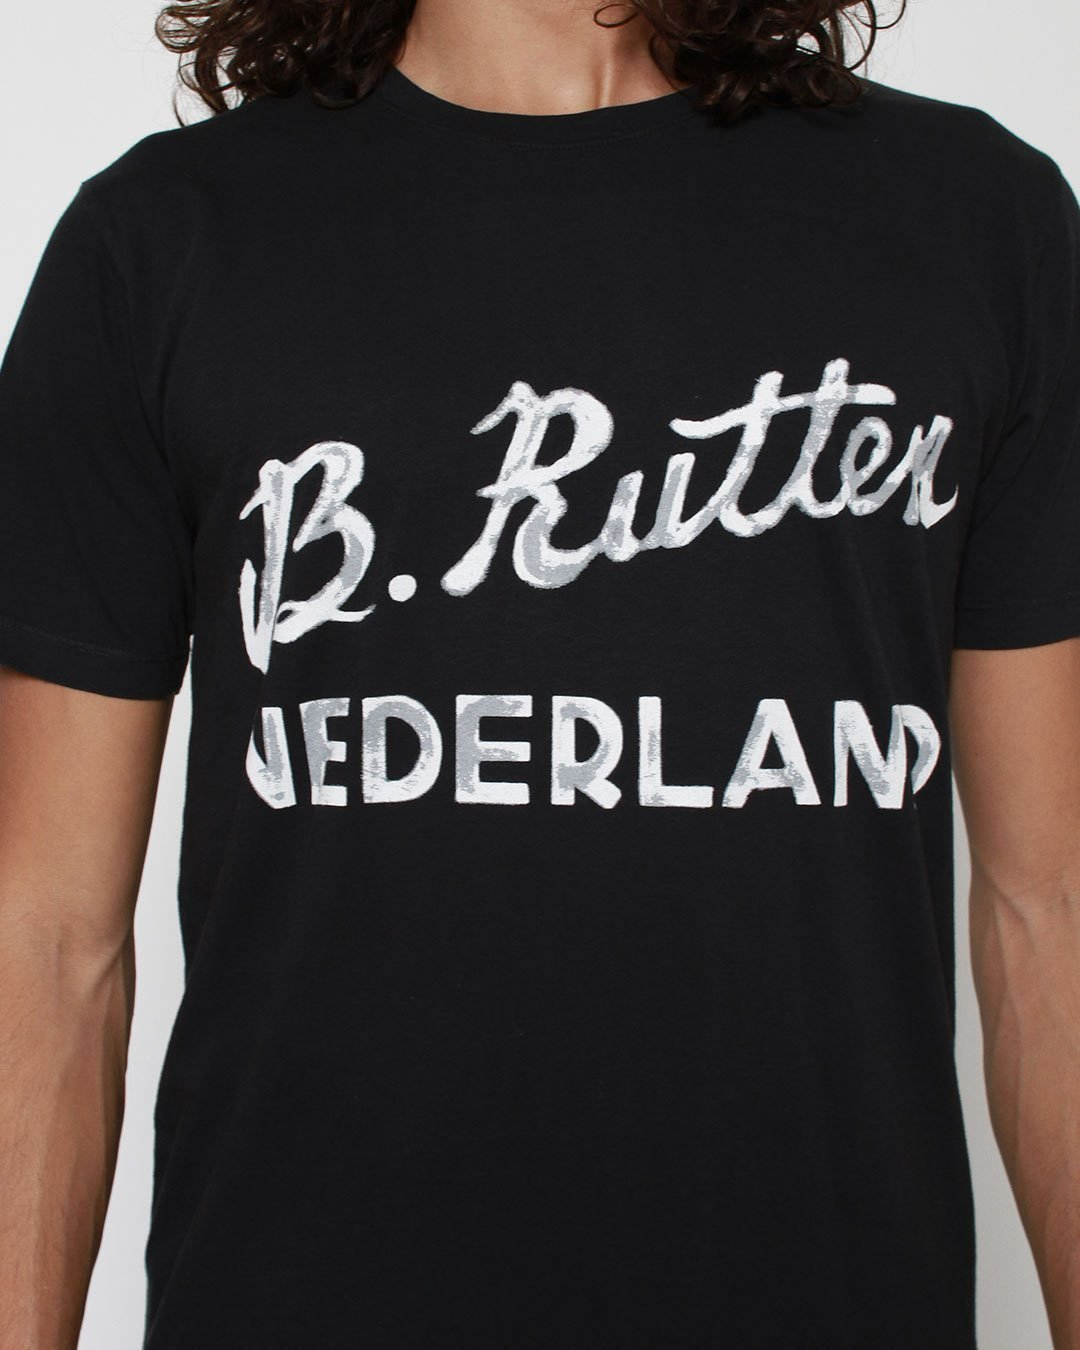 Bas Rutten Nederland Tee - Roots of Inc dba Roots of Fight